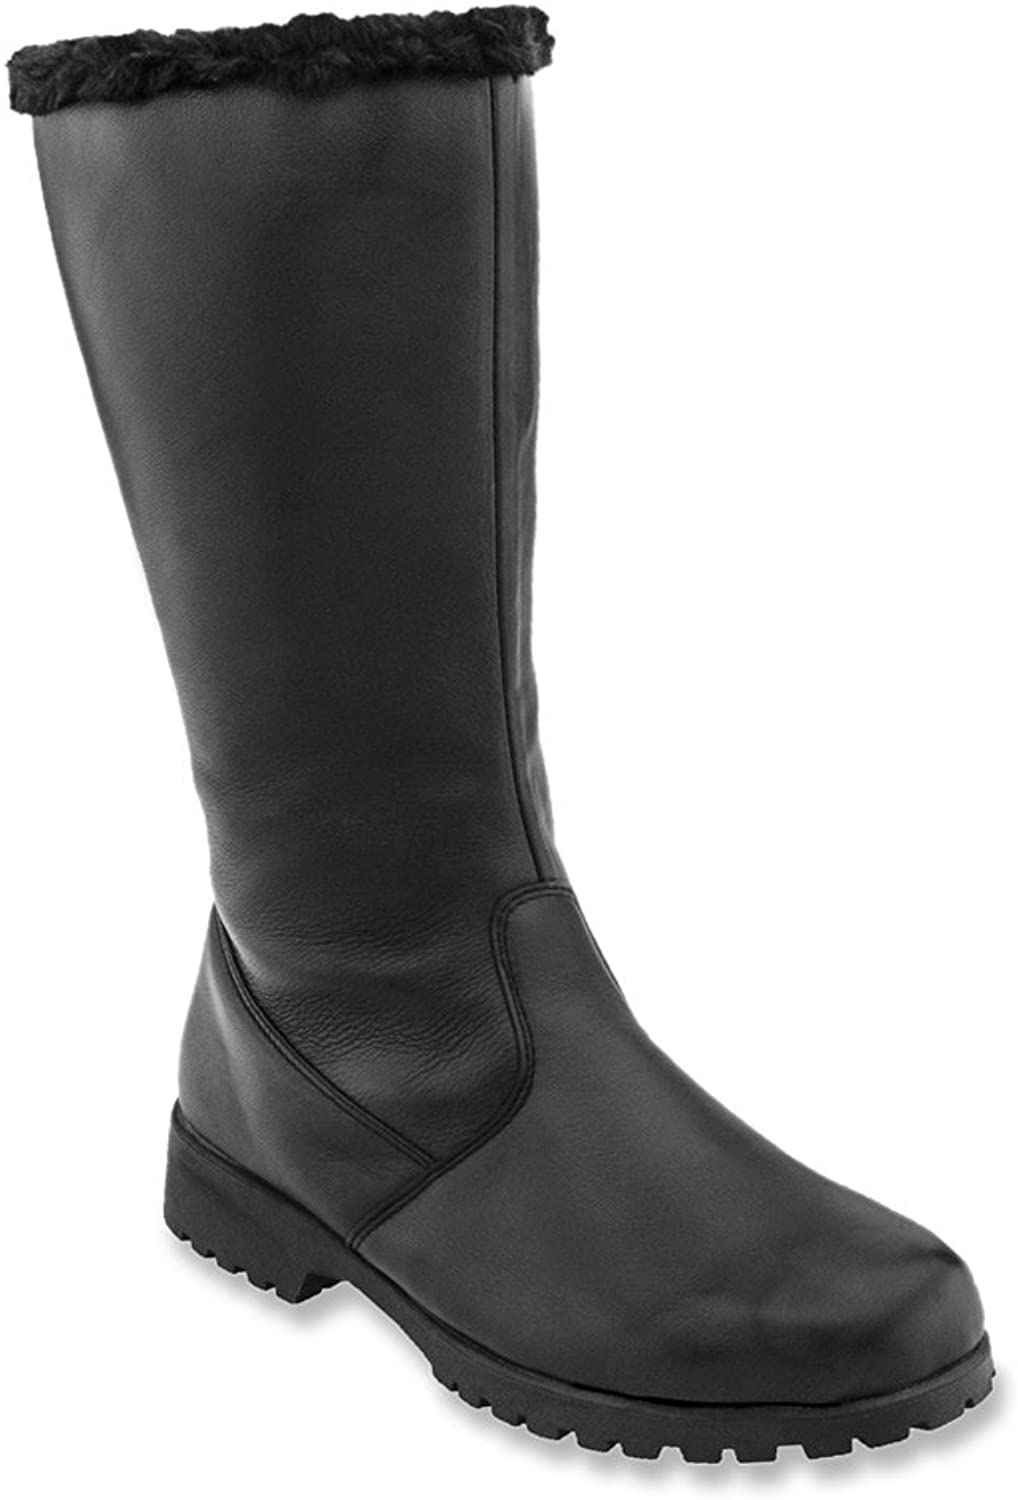 Propét Womens Madison Leather Closed Toe Mid-Calf Fashion, Black, Size 7.0